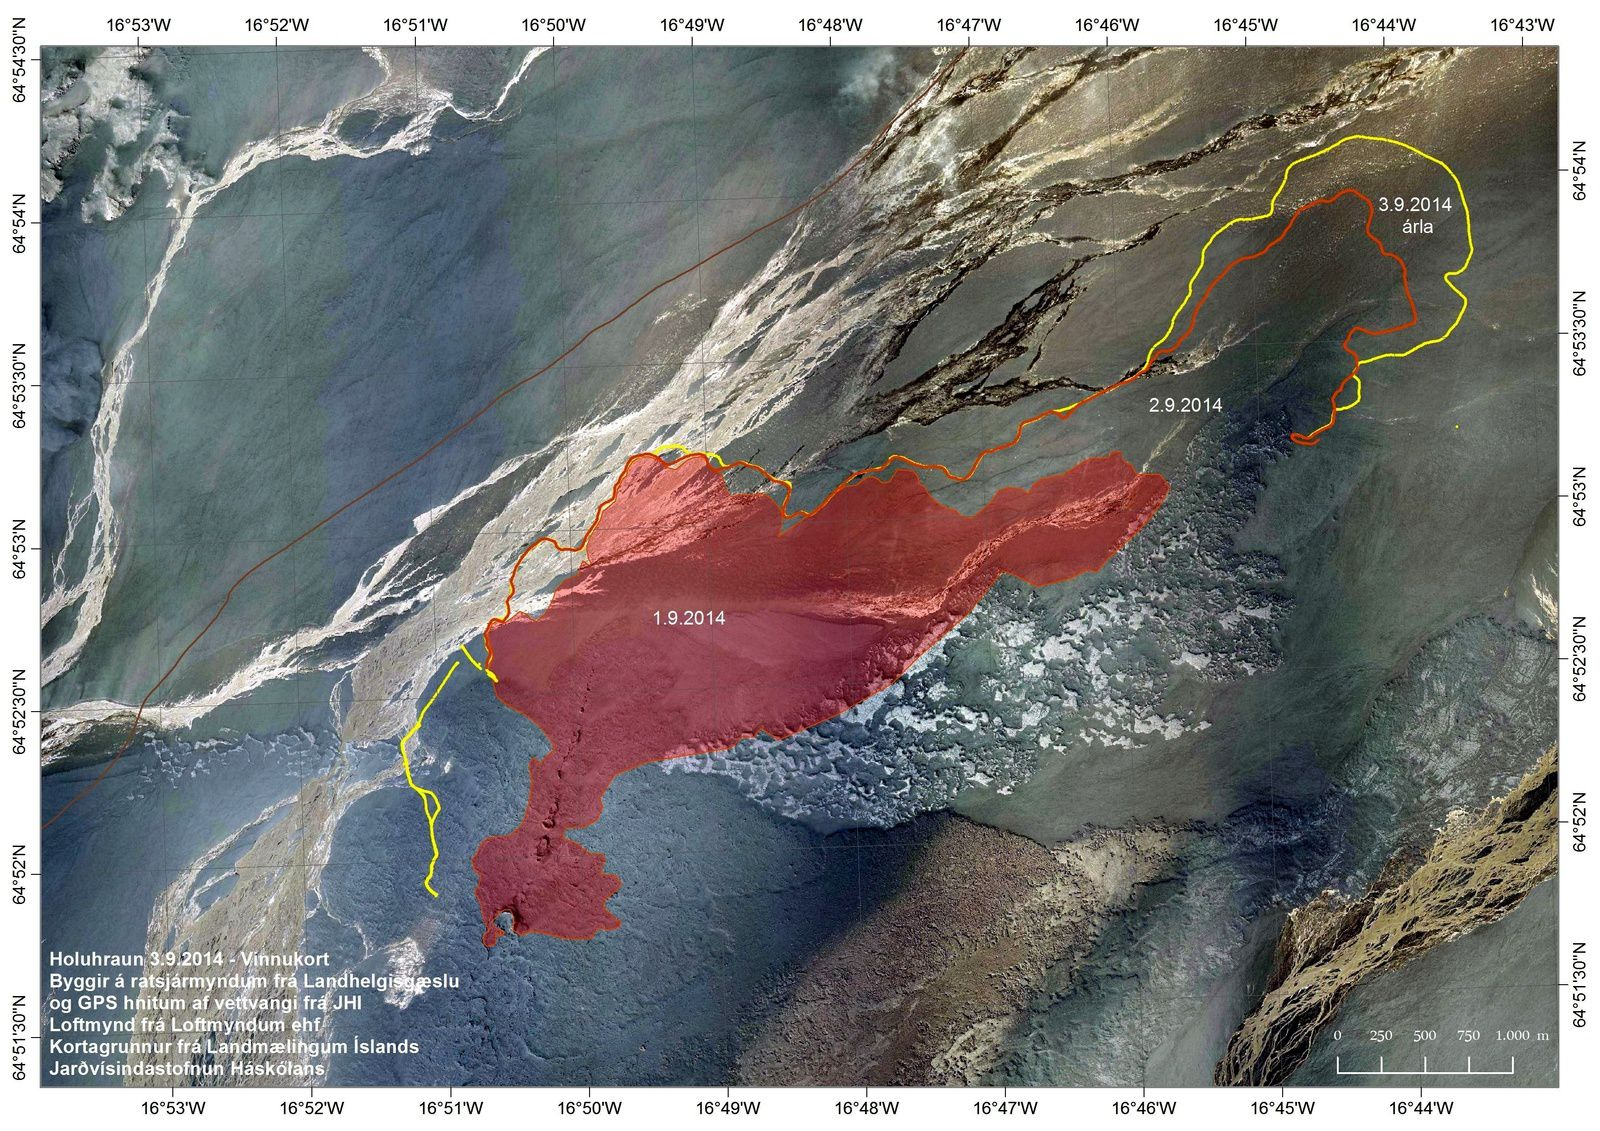 Extension of the lava field in Holuhraun with dates - map IMO